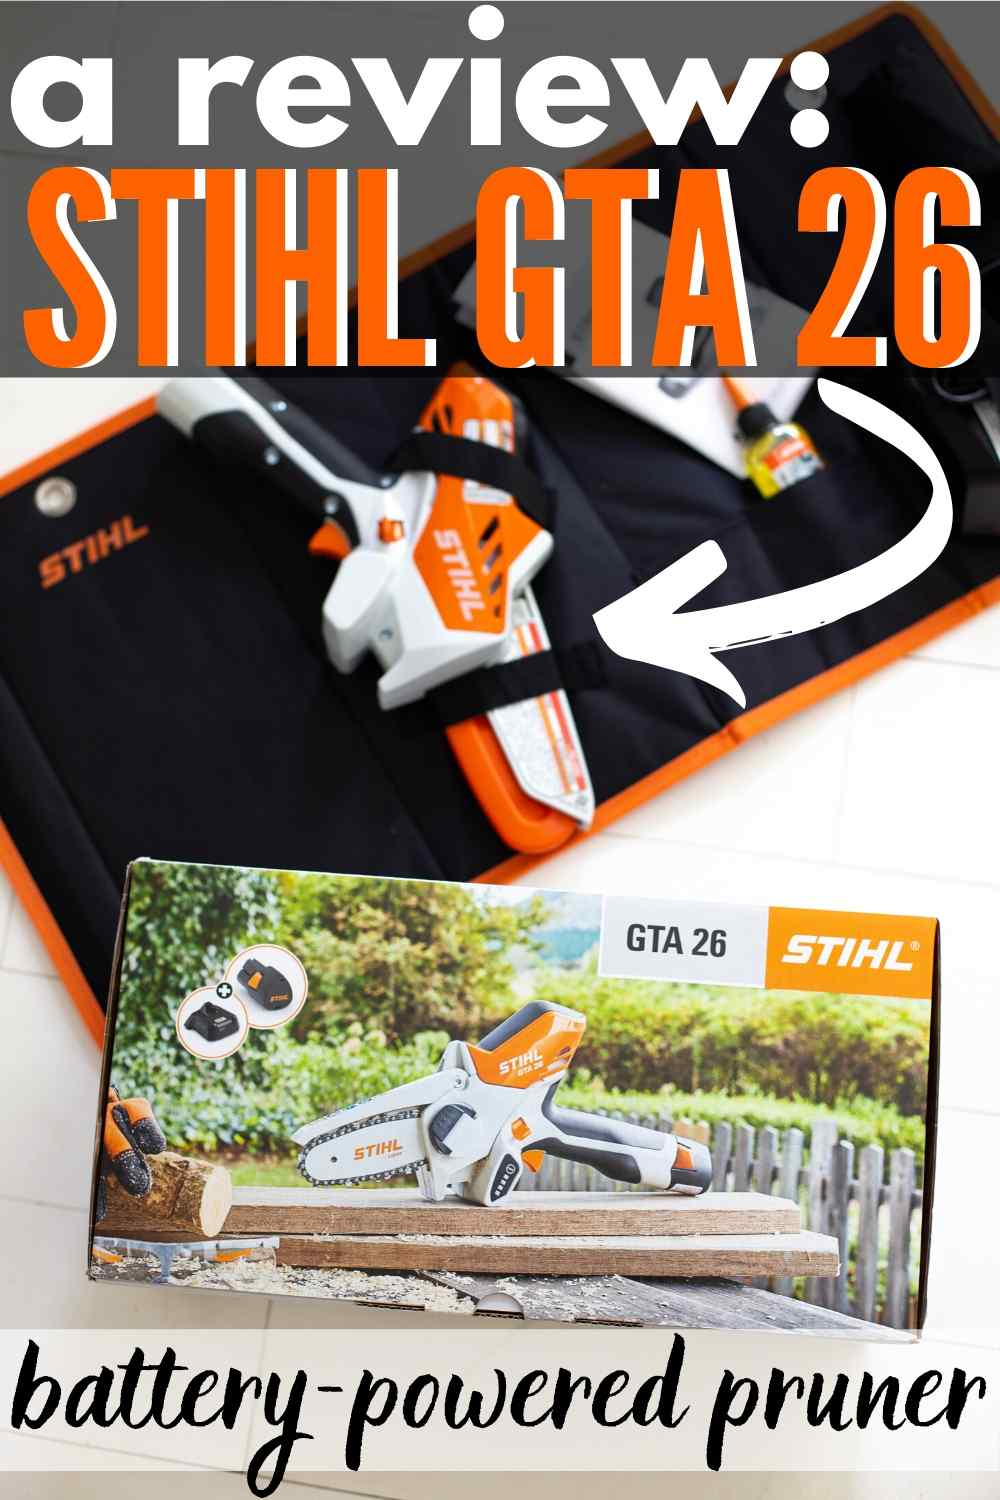 "STIHL GTA 26 in box on white floor - text ""a review stihl GTA 26 battery powered pruner"""